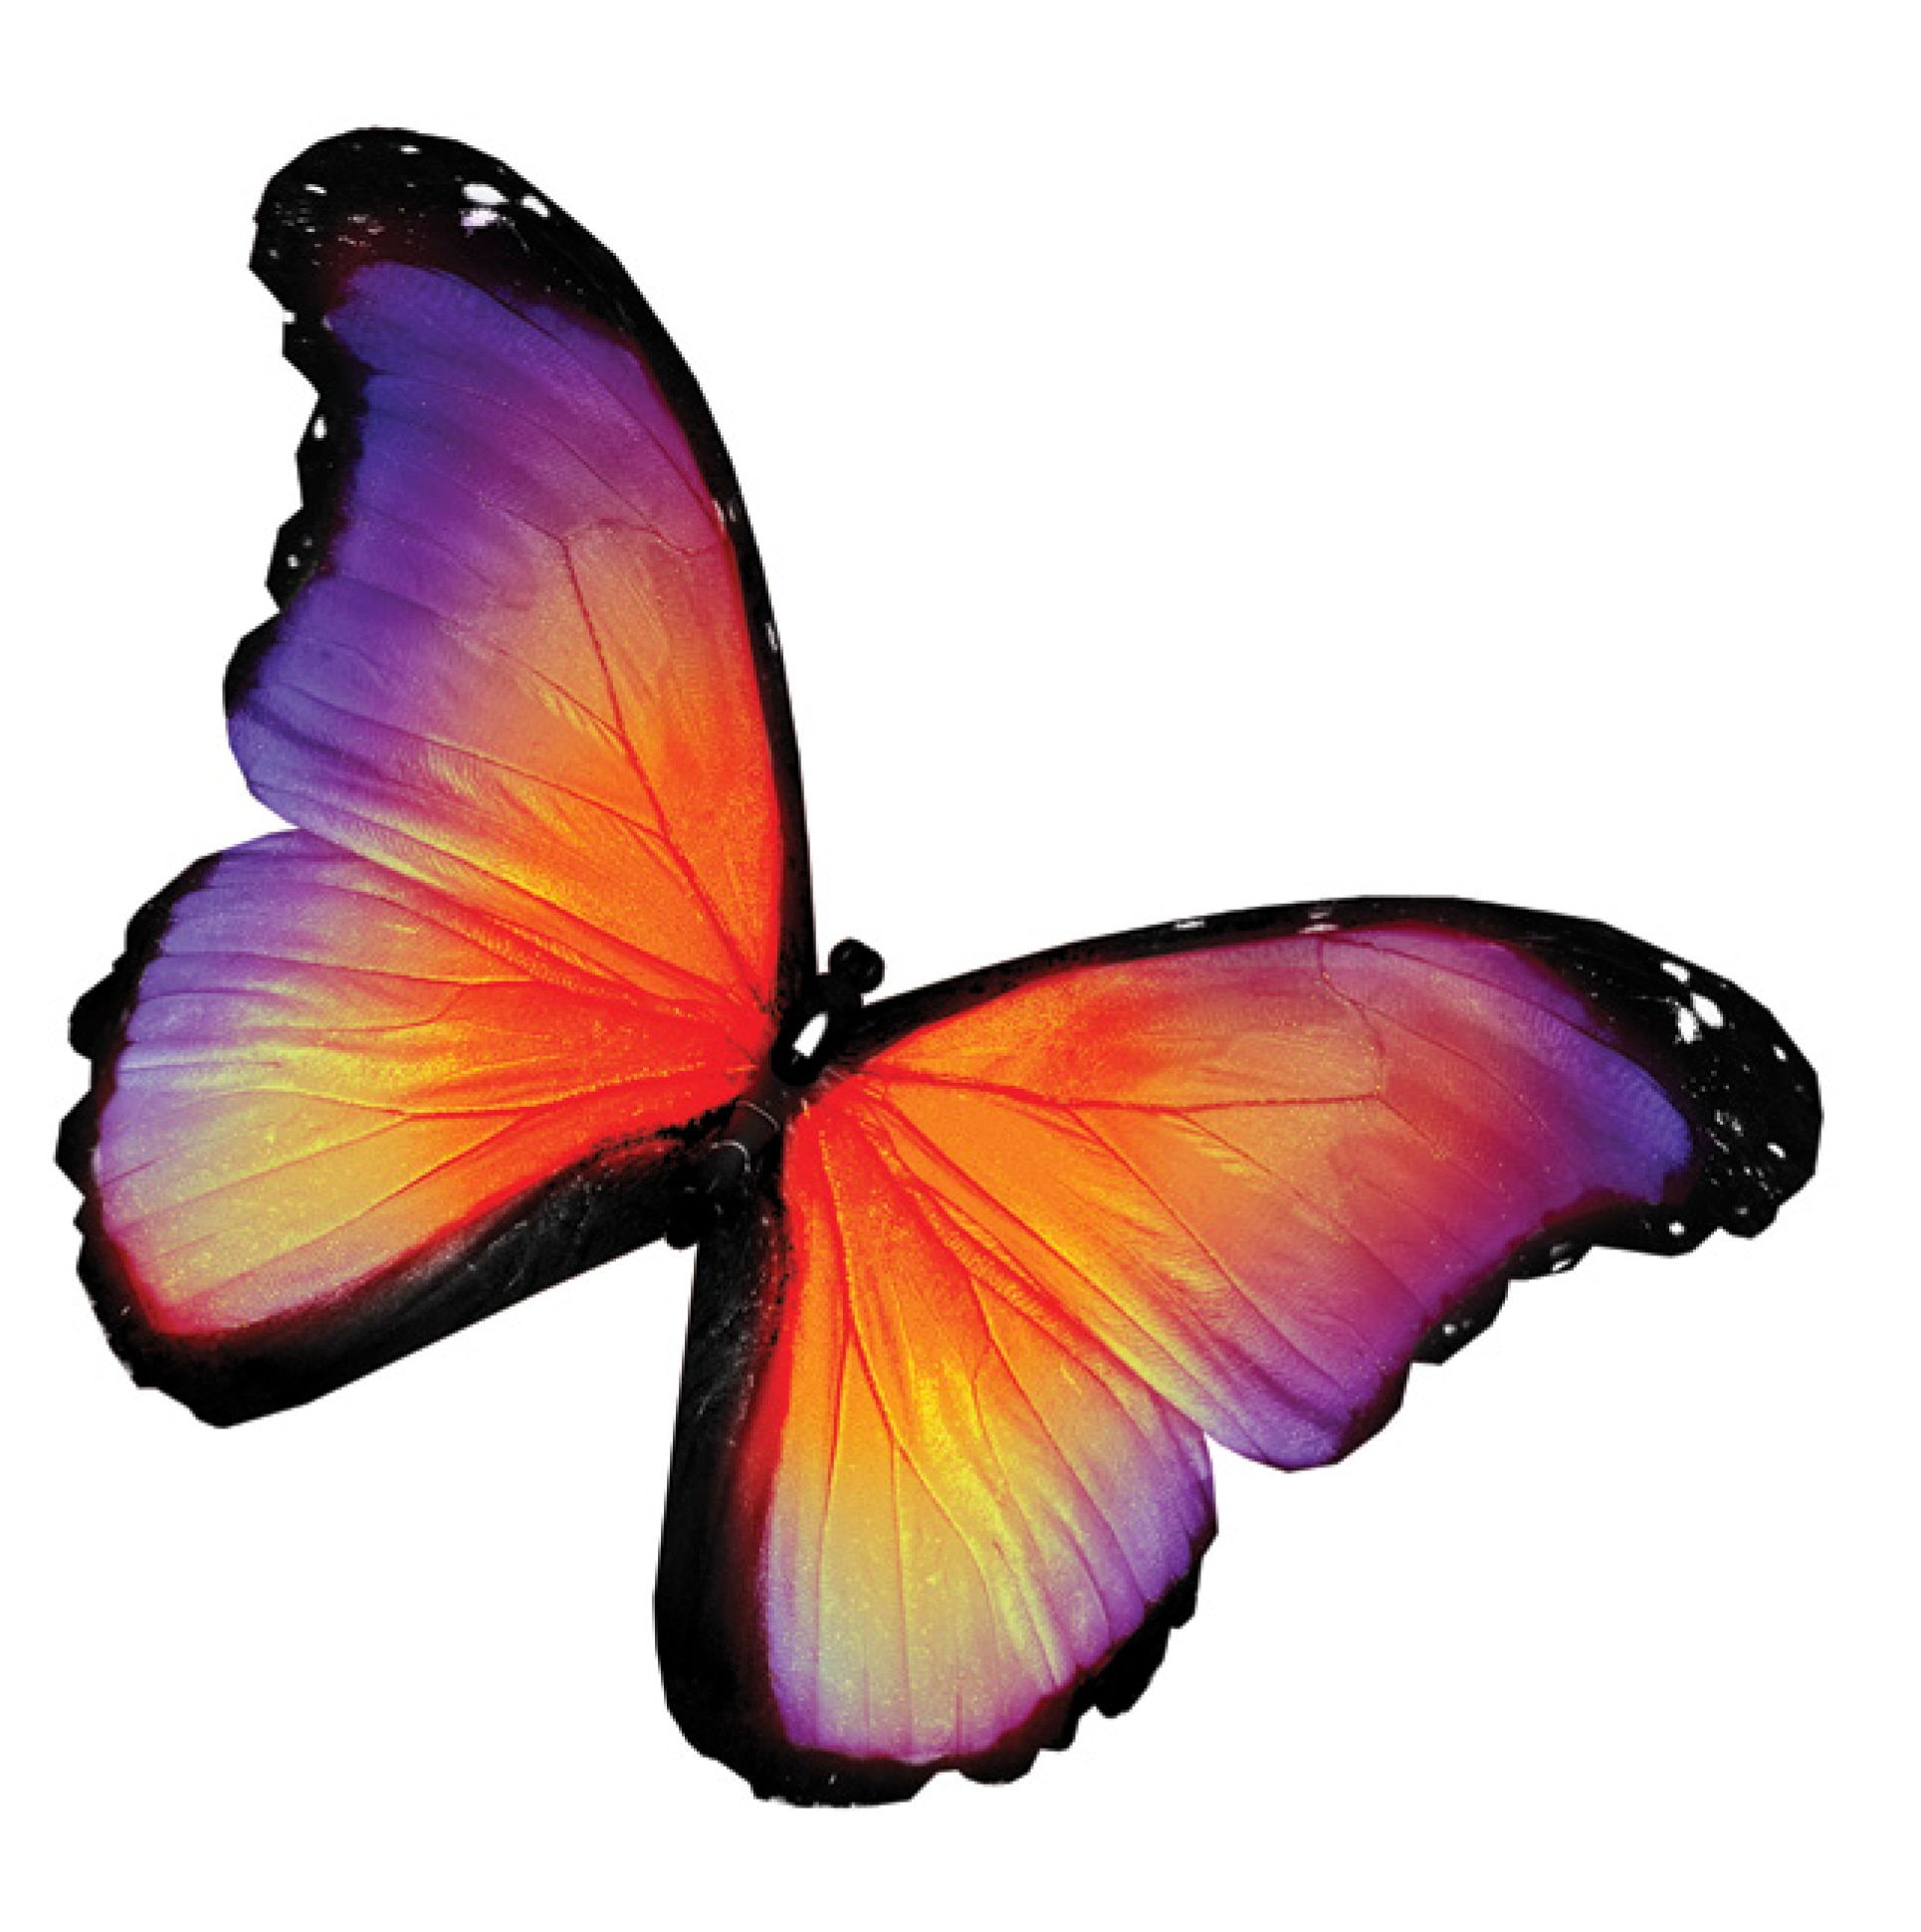 Merck:/Freestyle/BI-Bioscience/Cell-Culture/stem-cell-images/butterfly.jpg